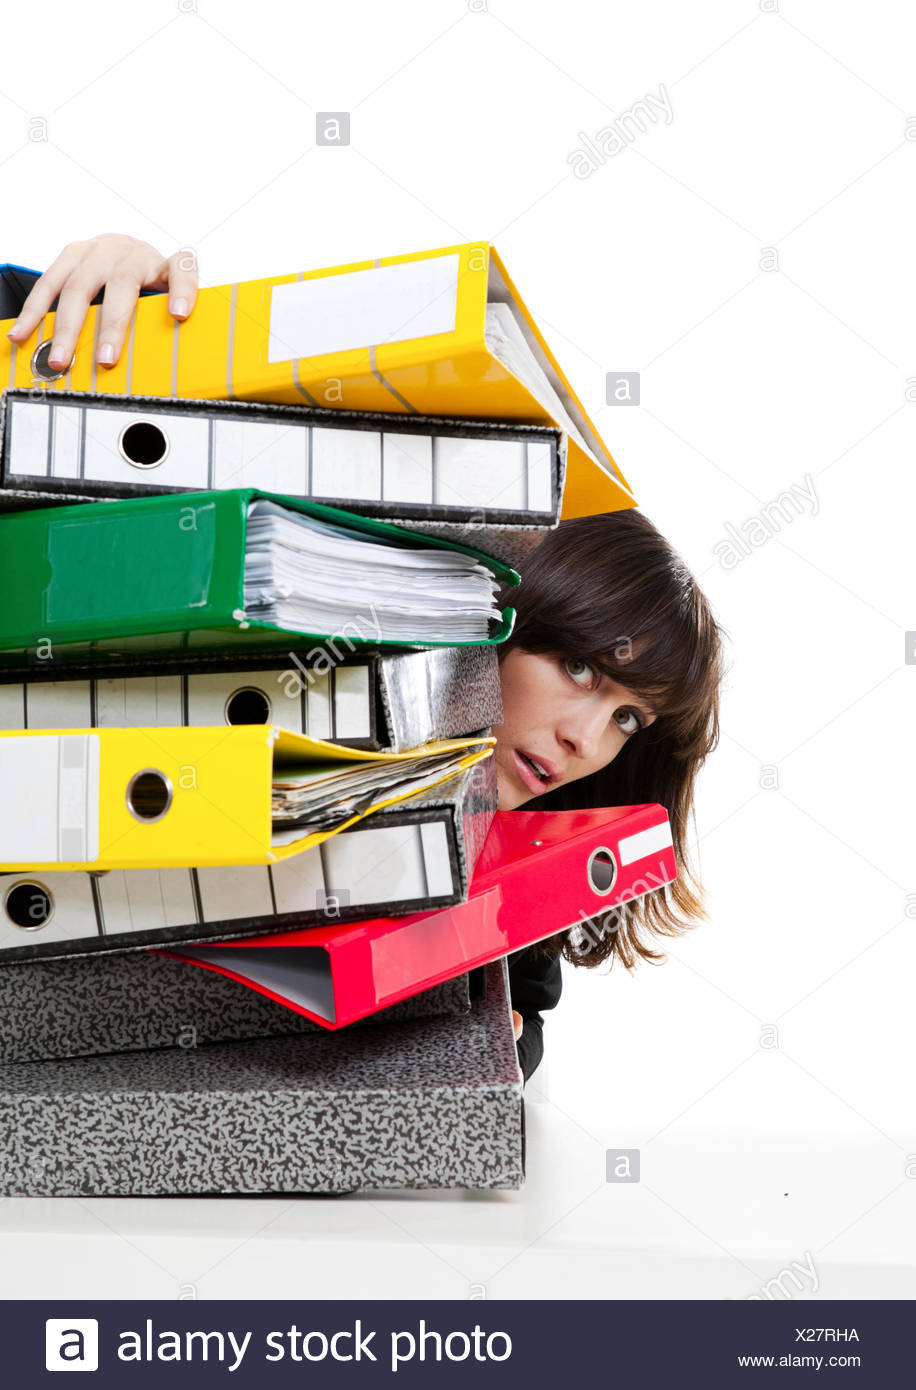 Nice person office Layout Woman Office Beautiful Beauteously Nice Job Isolated Female Person Blank European Caucasian Frustration Frustrated Dapper Alamy Woman Office Beautiful Beauteously Nice Job Isolated Female Person